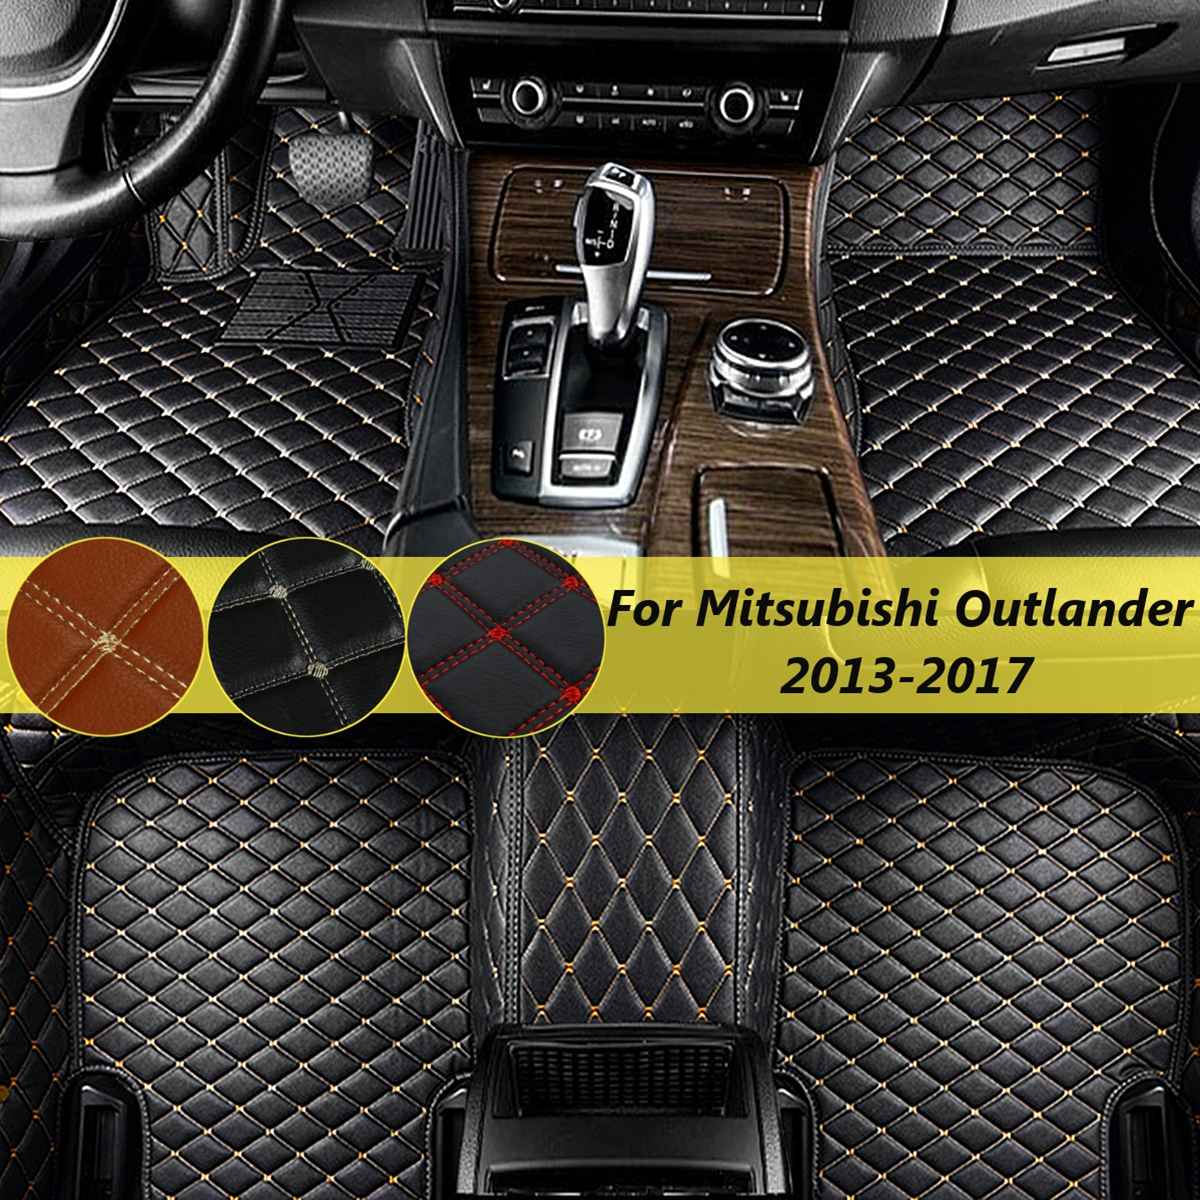 For Mitsubishi Outlander 2013 2014-2017  Car Front Rear Floor Mat 1Set 3Pc Cover Foot Mat Carpet Waterproof SLG7131J AccessoriesFor Mitsubishi Outlander 2013 2014-2017  Car Front Rear Floor Mat 1Set 3Pc Cover Foot Mat Carpet Waterproof SLG7131J Accessories